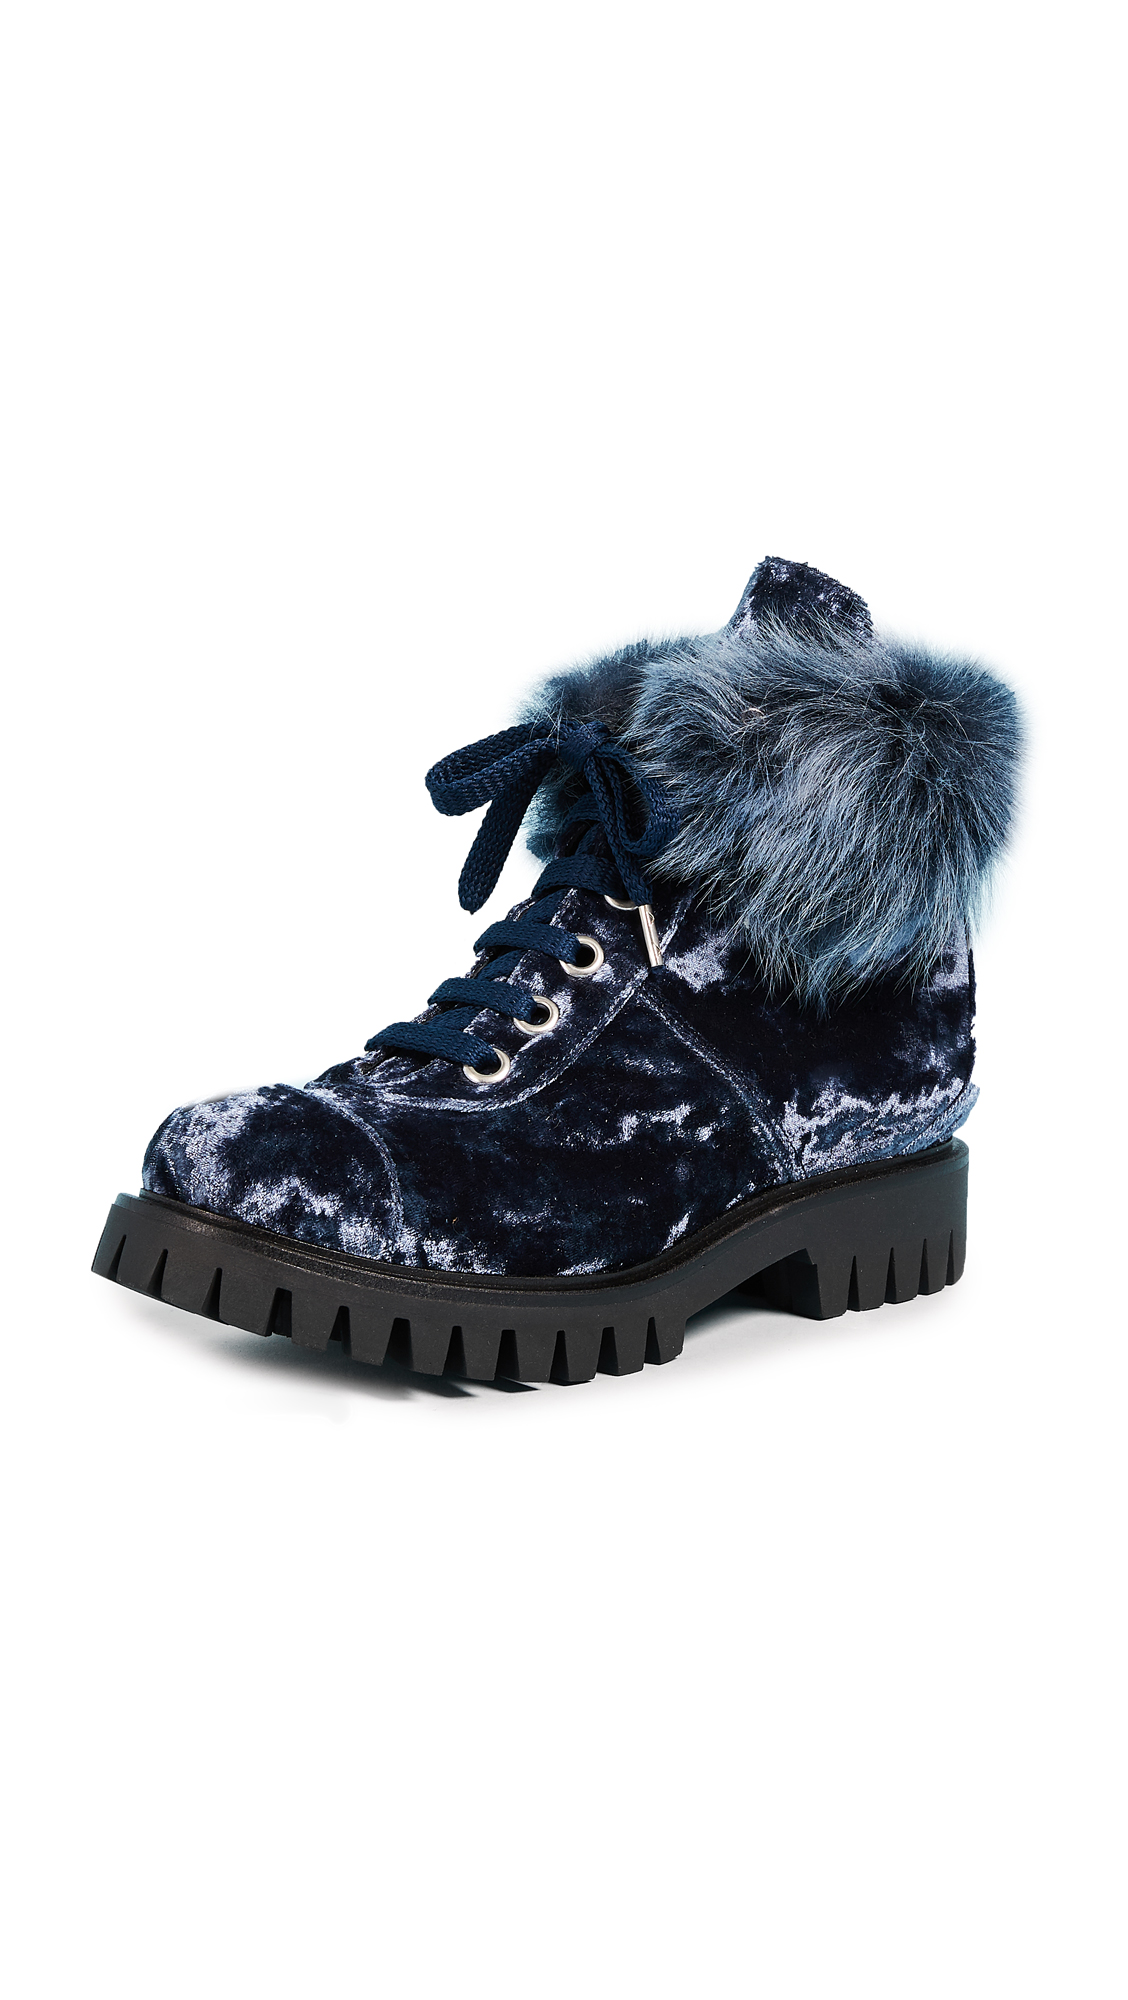 Isa Tapia Ras Combat Boots - Navy